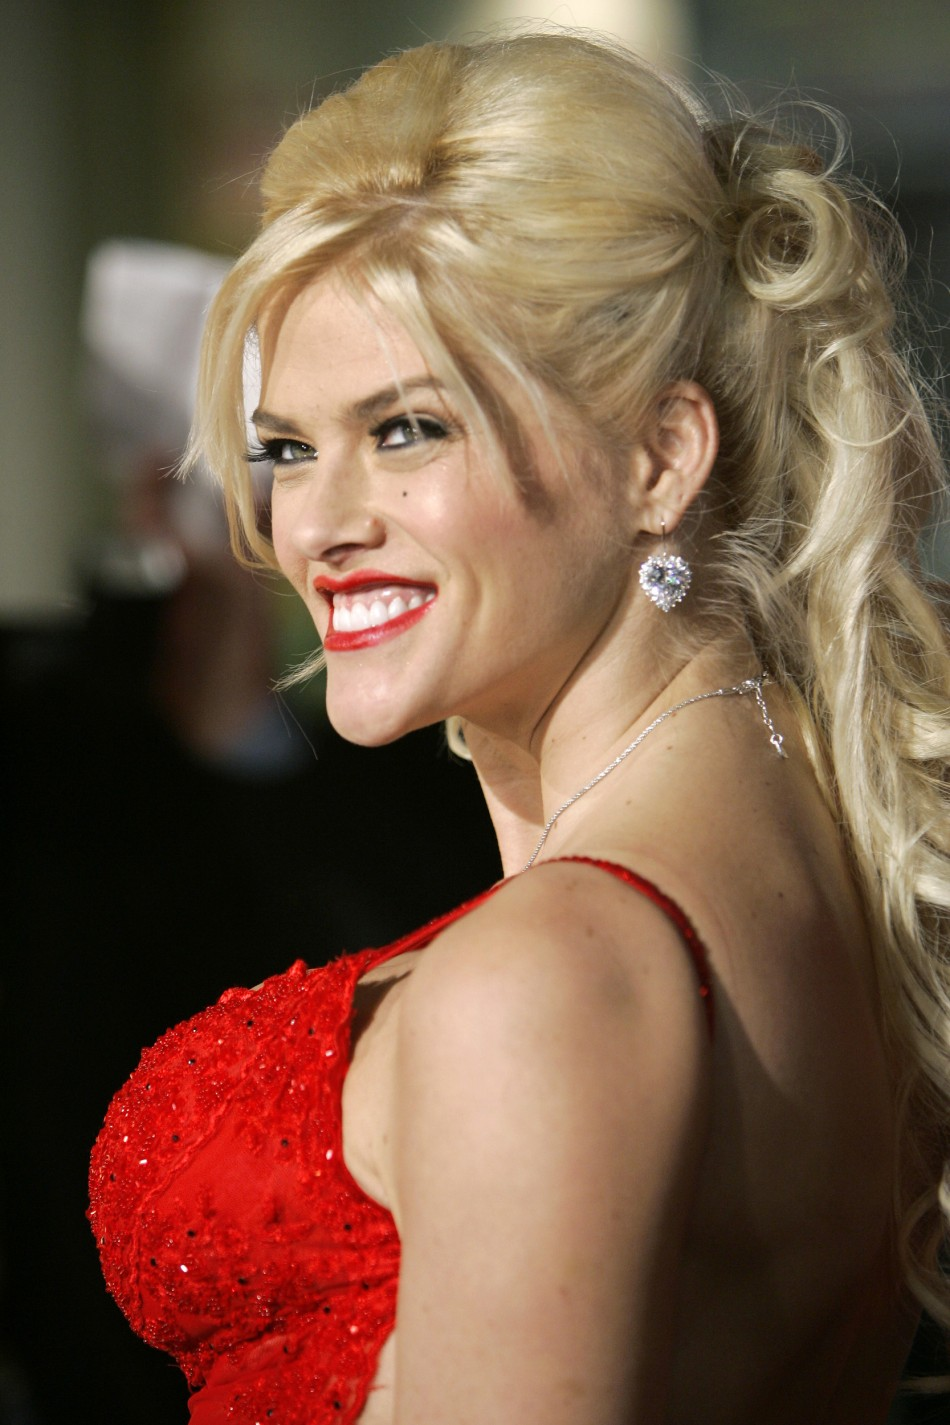 Model Anna Nicole Smith poses at world premiere of quotBe Coolquot.